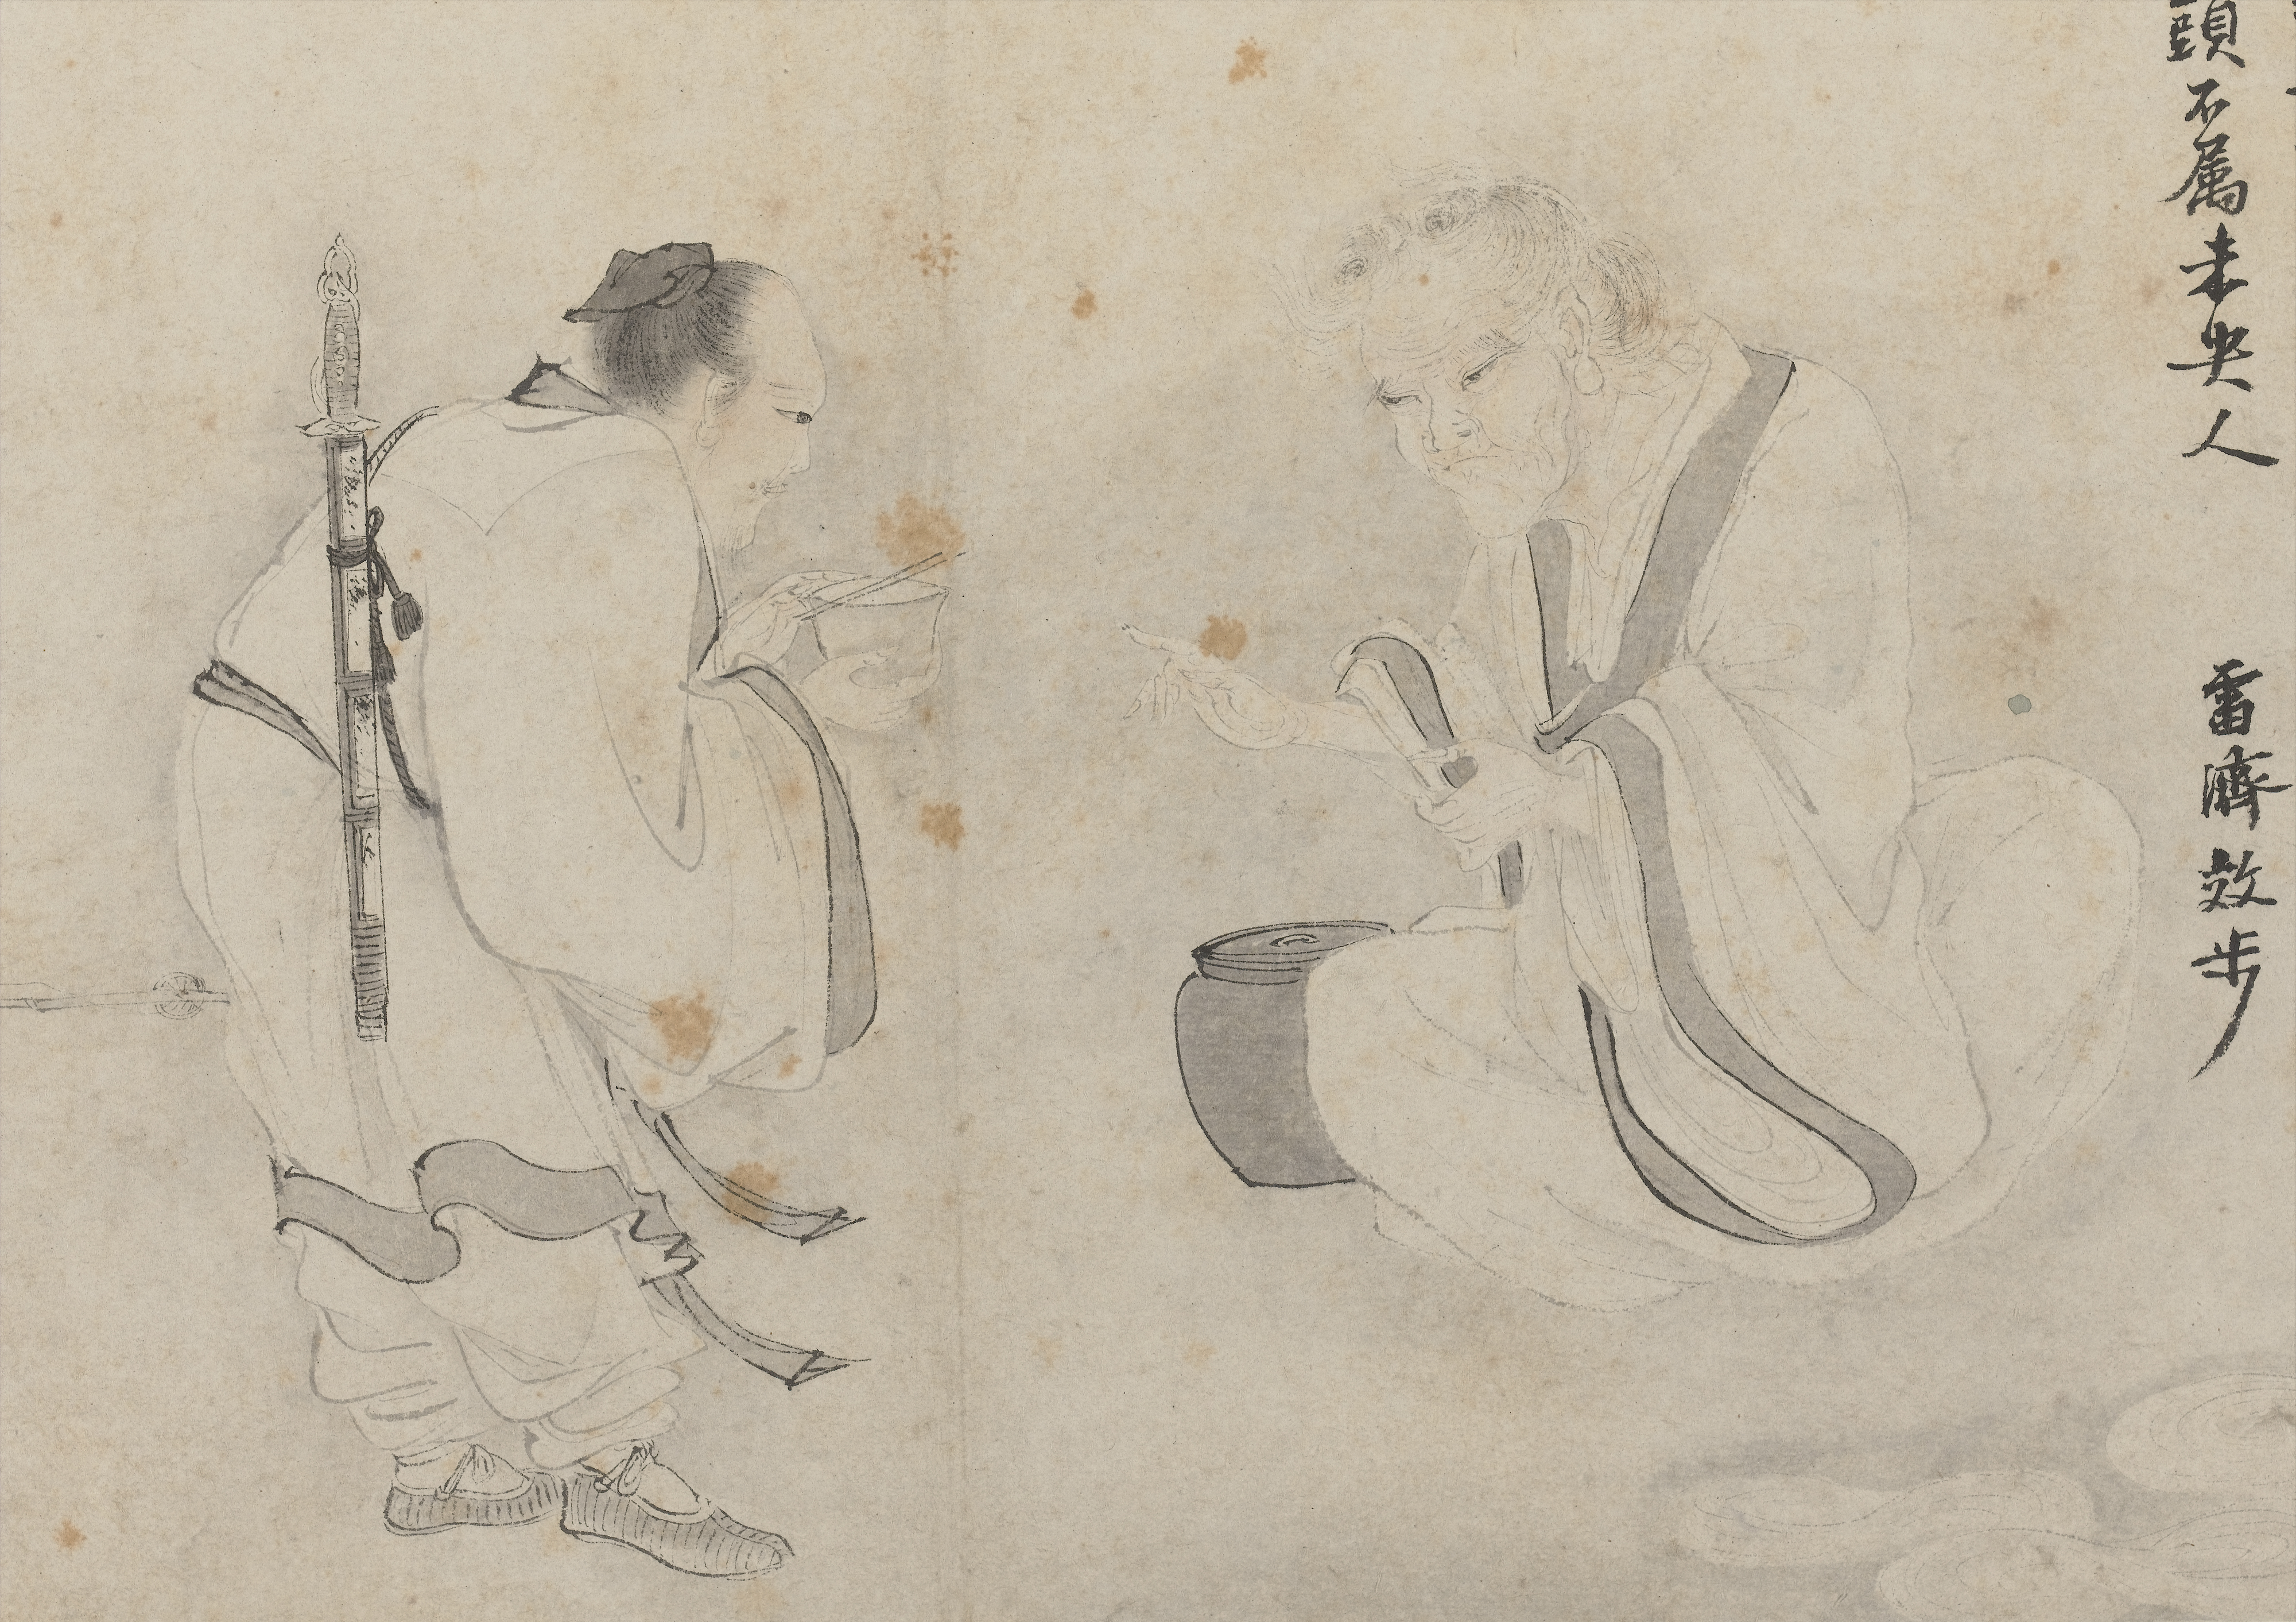 Guo Xu album dated 1503 (6).jpg